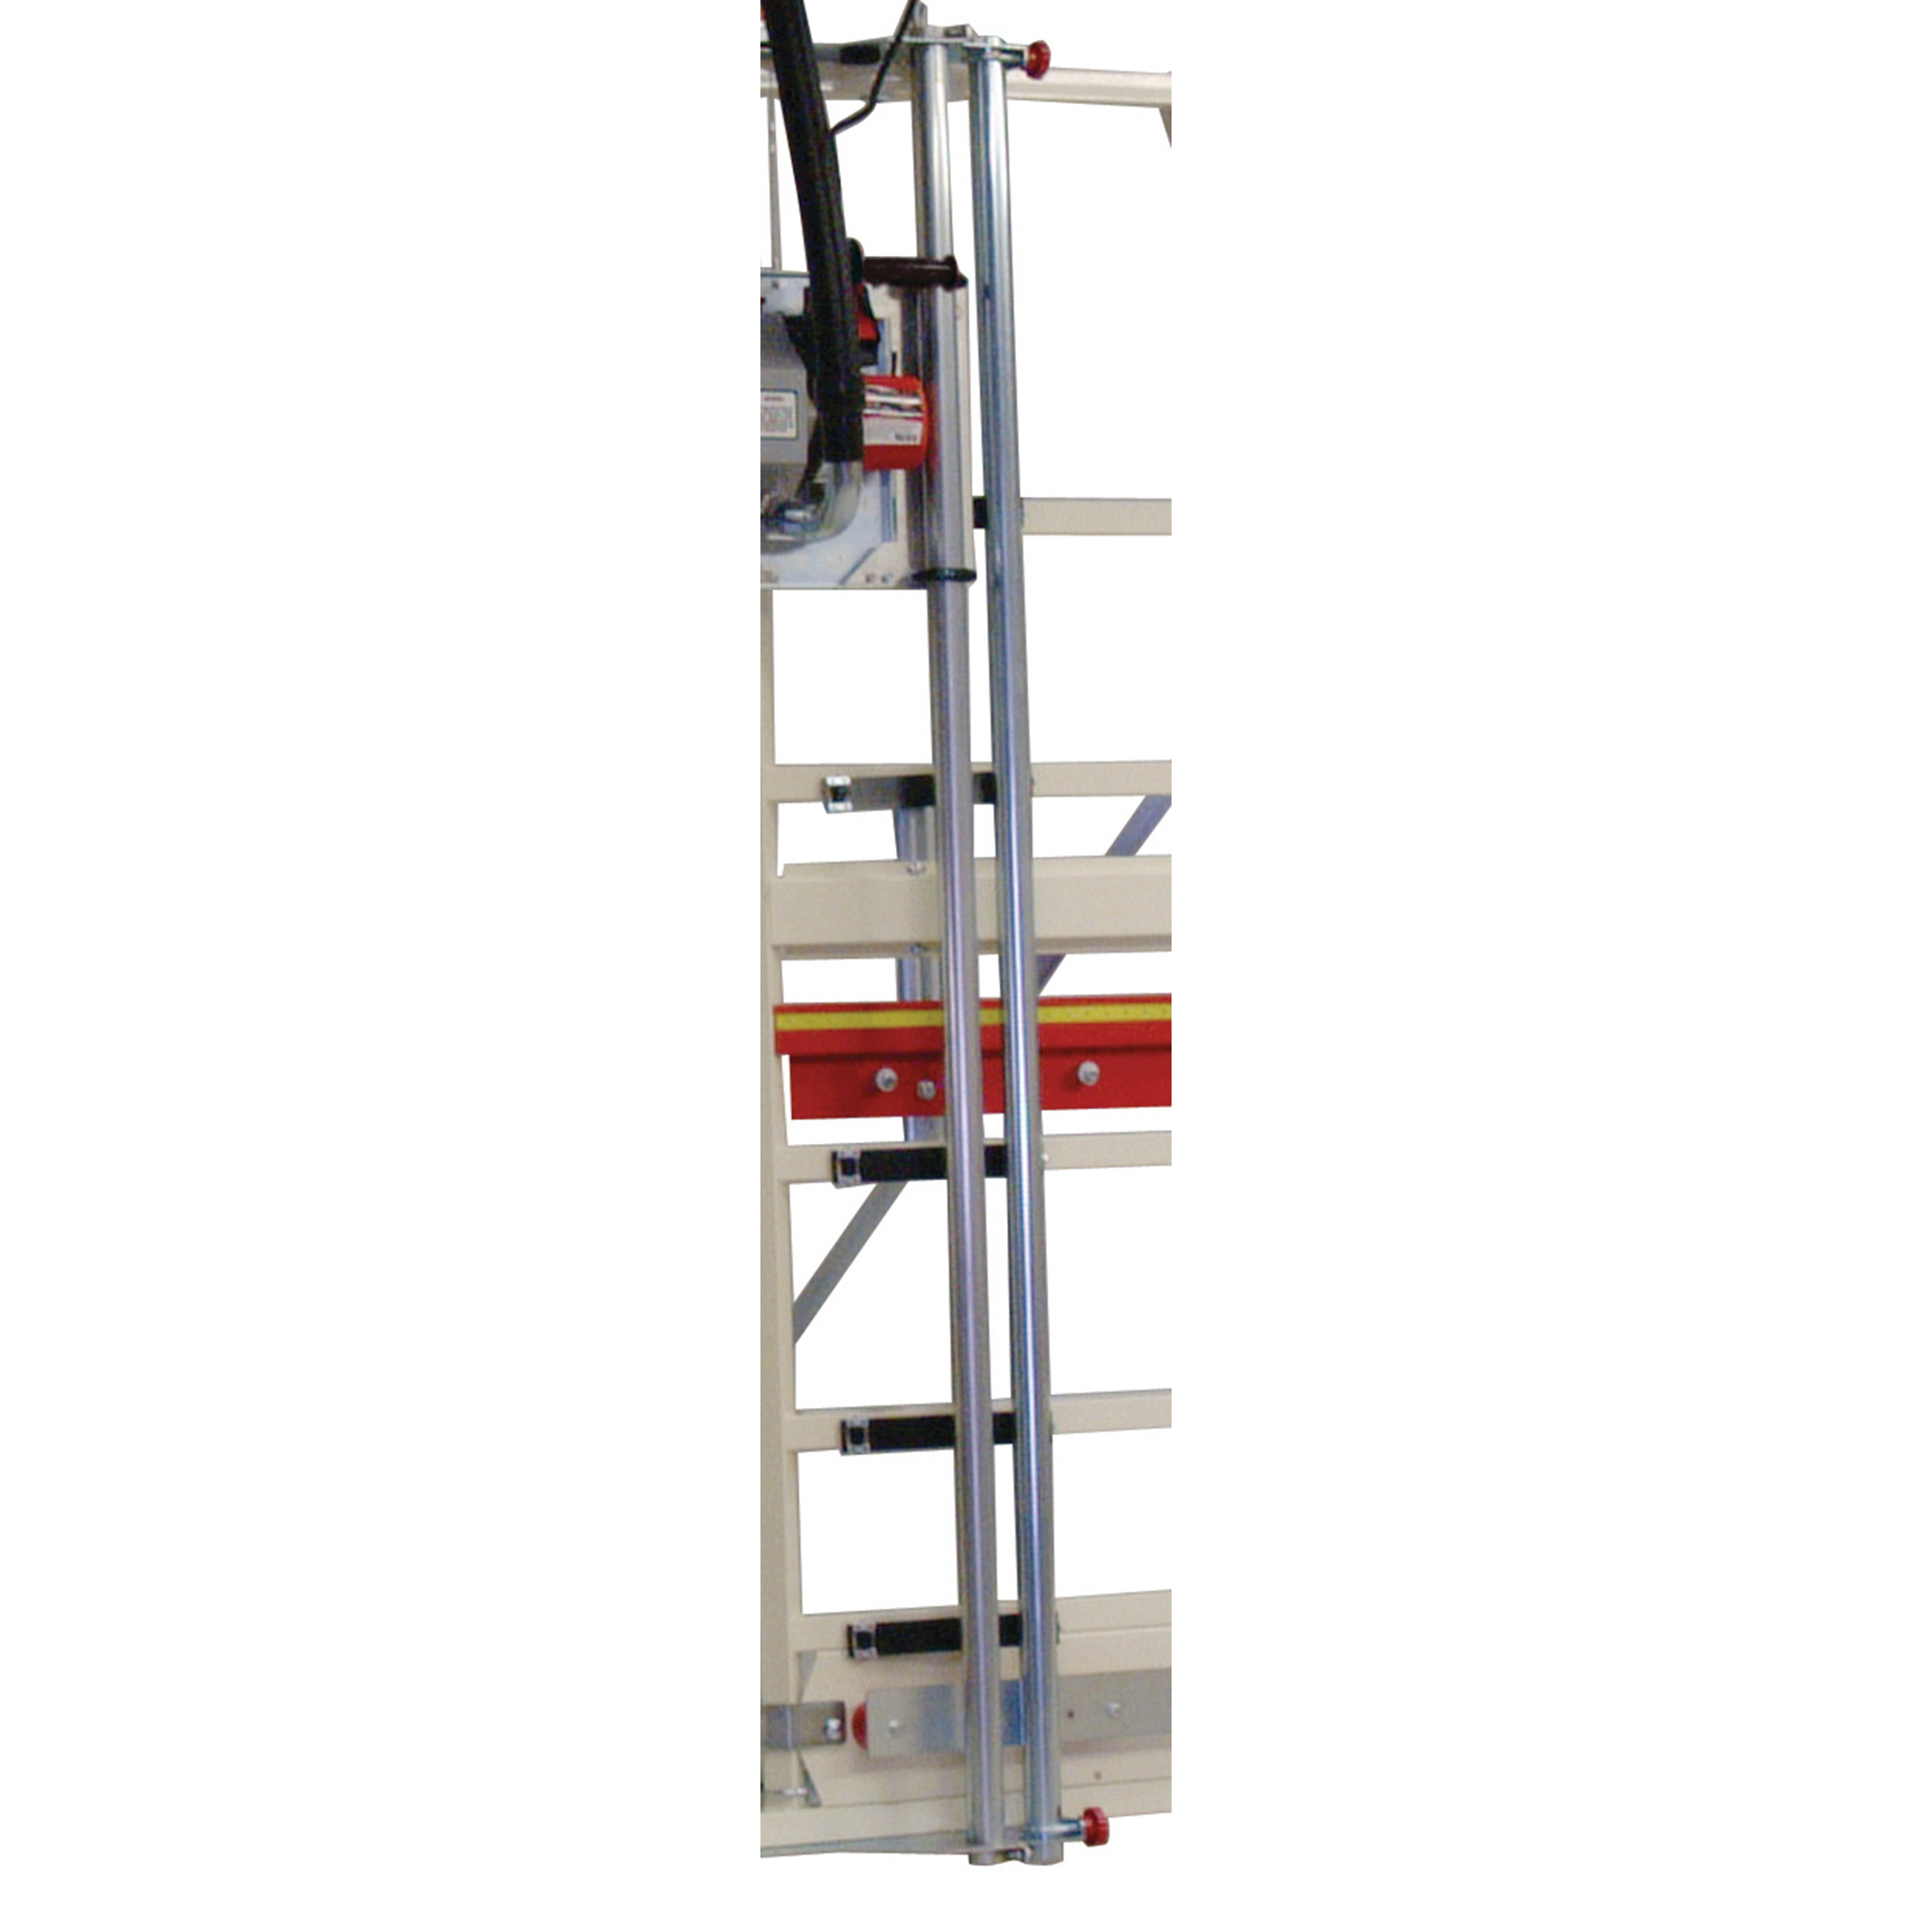 Hold Down Bar for Safety Speed H6 Vertical Panel Saw